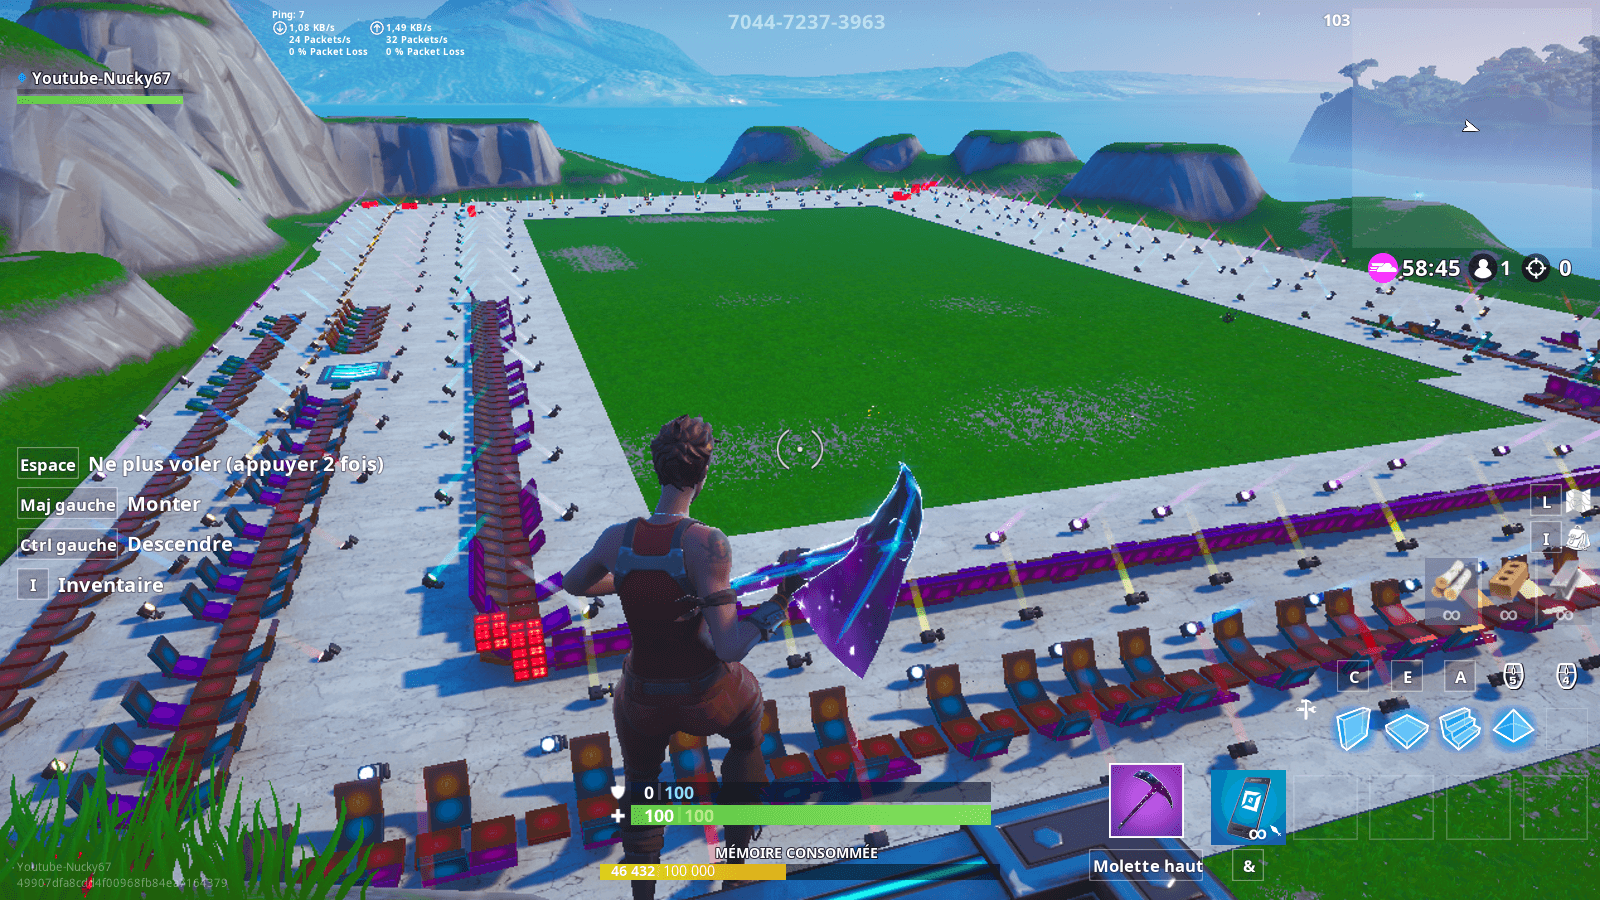 Fortnite Creative Maps by YOUTUBE-NUCKY67 - Fortnite Creative Codes on kindle fire maps, time magazine maps, more maps, ifit maps, maroon vintage maps, star media maps, add gta 5 maps, yellow pages maps, dirty maroon maps, united states forest service maps, i phone maps, top 10 maps, ios7 maps,